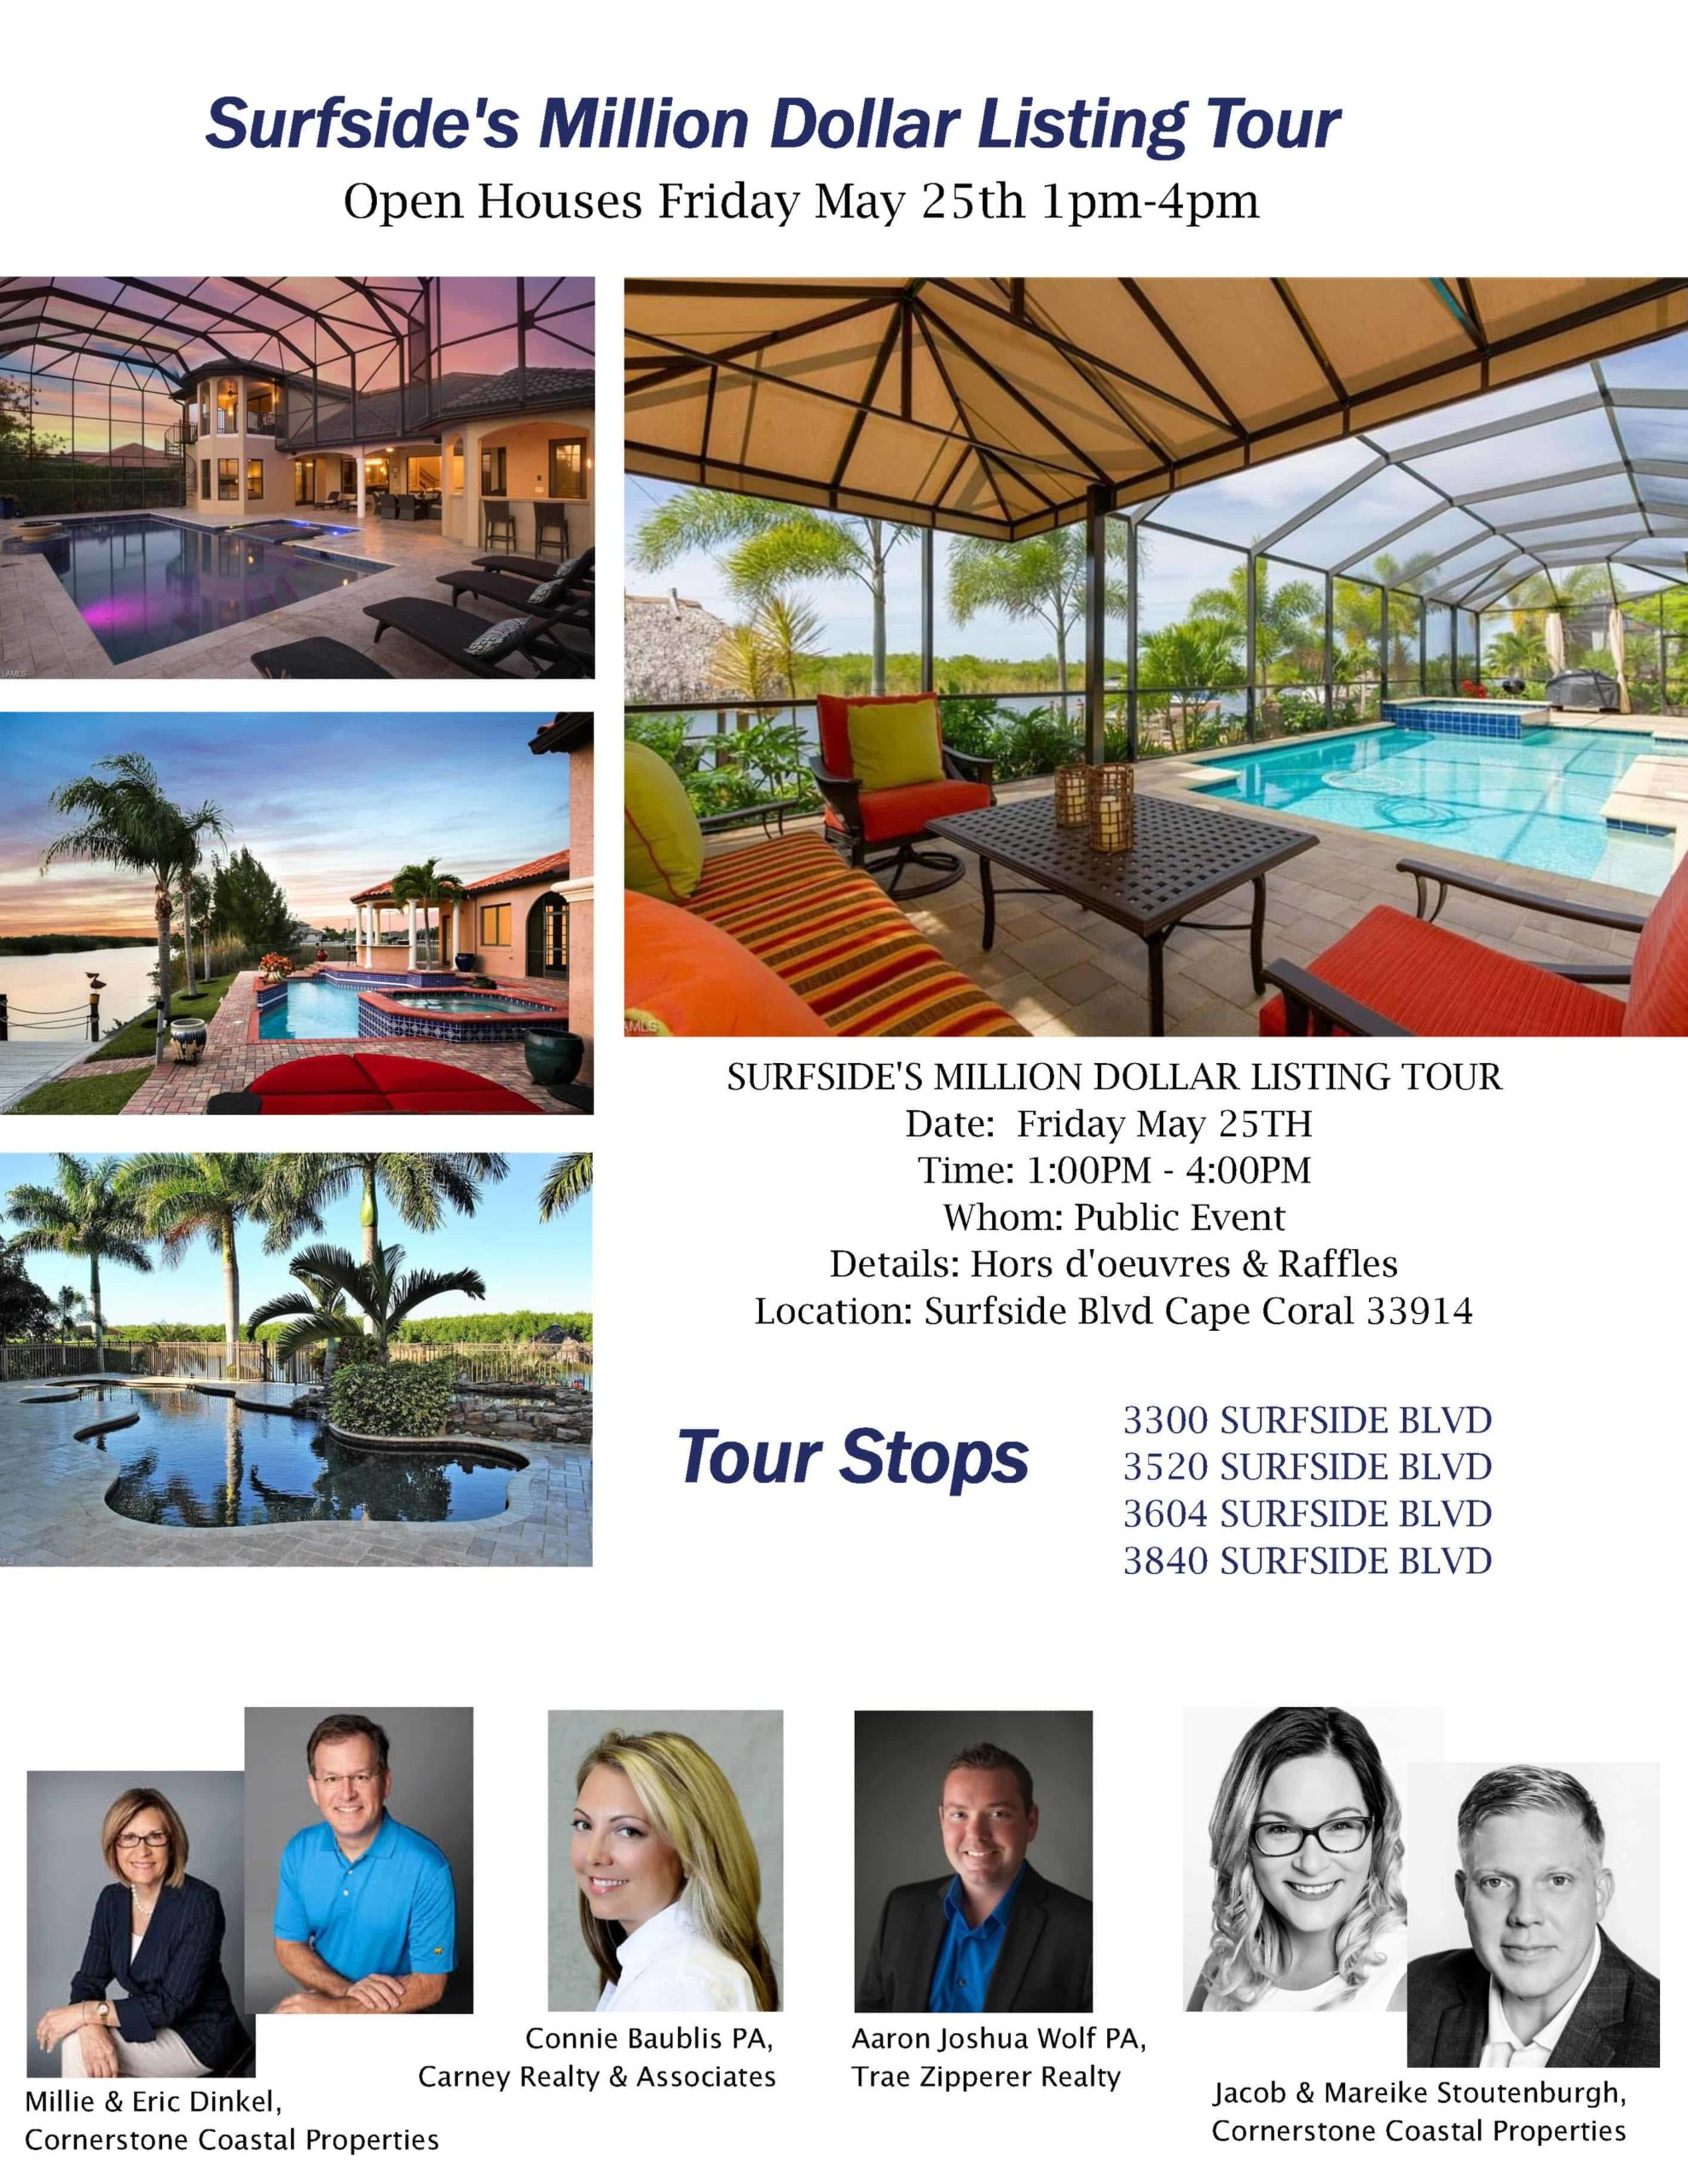 Surfside's Million Dollar Listing Tour